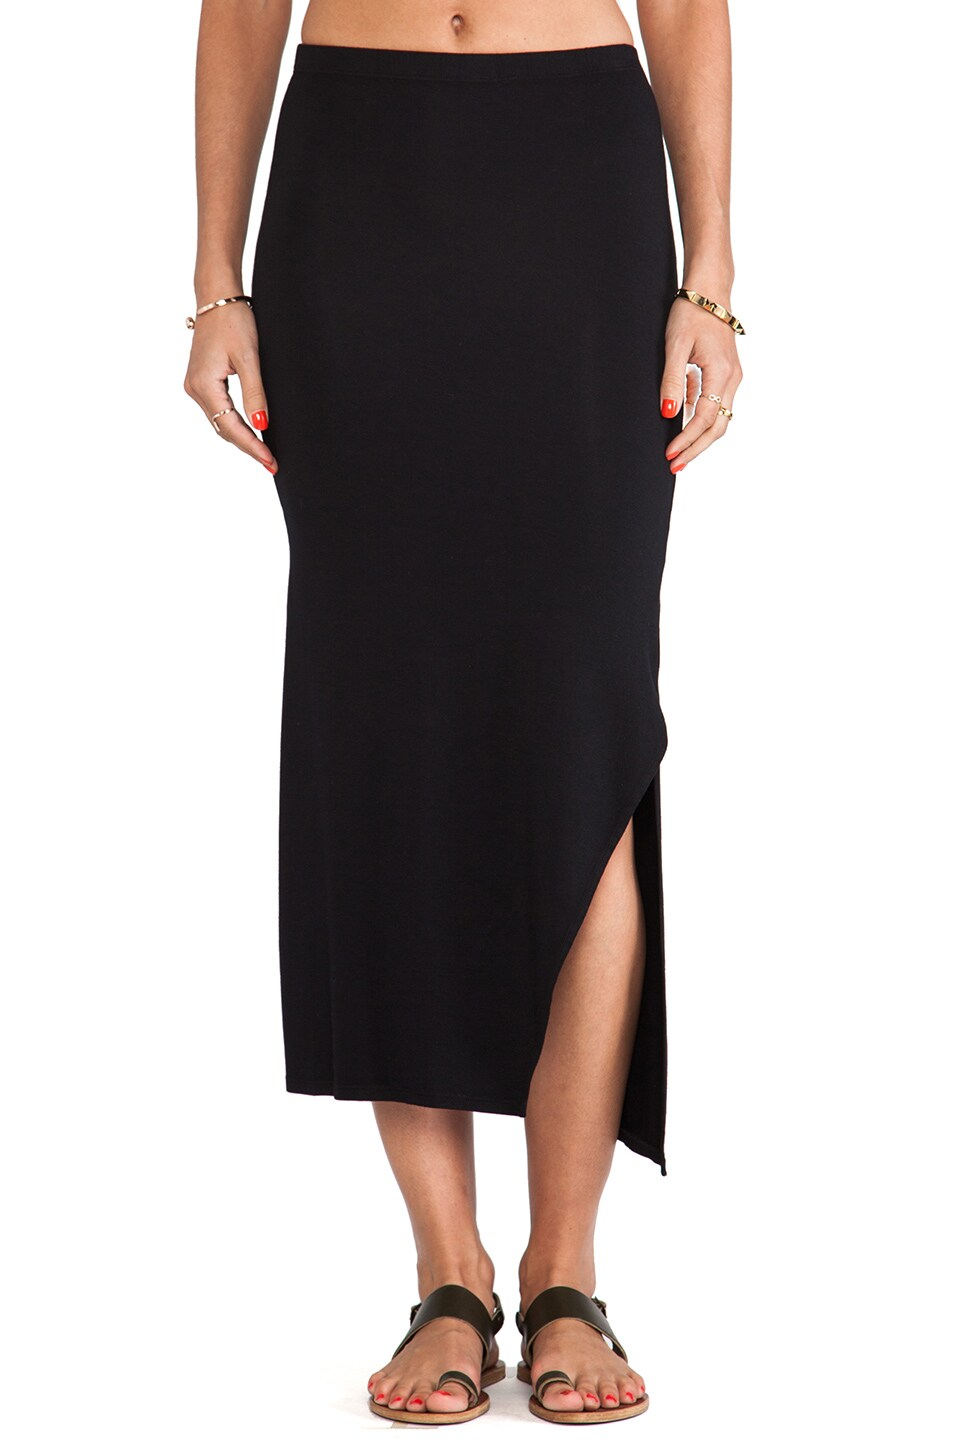 Feel the Piece Mindy Skirt in Black